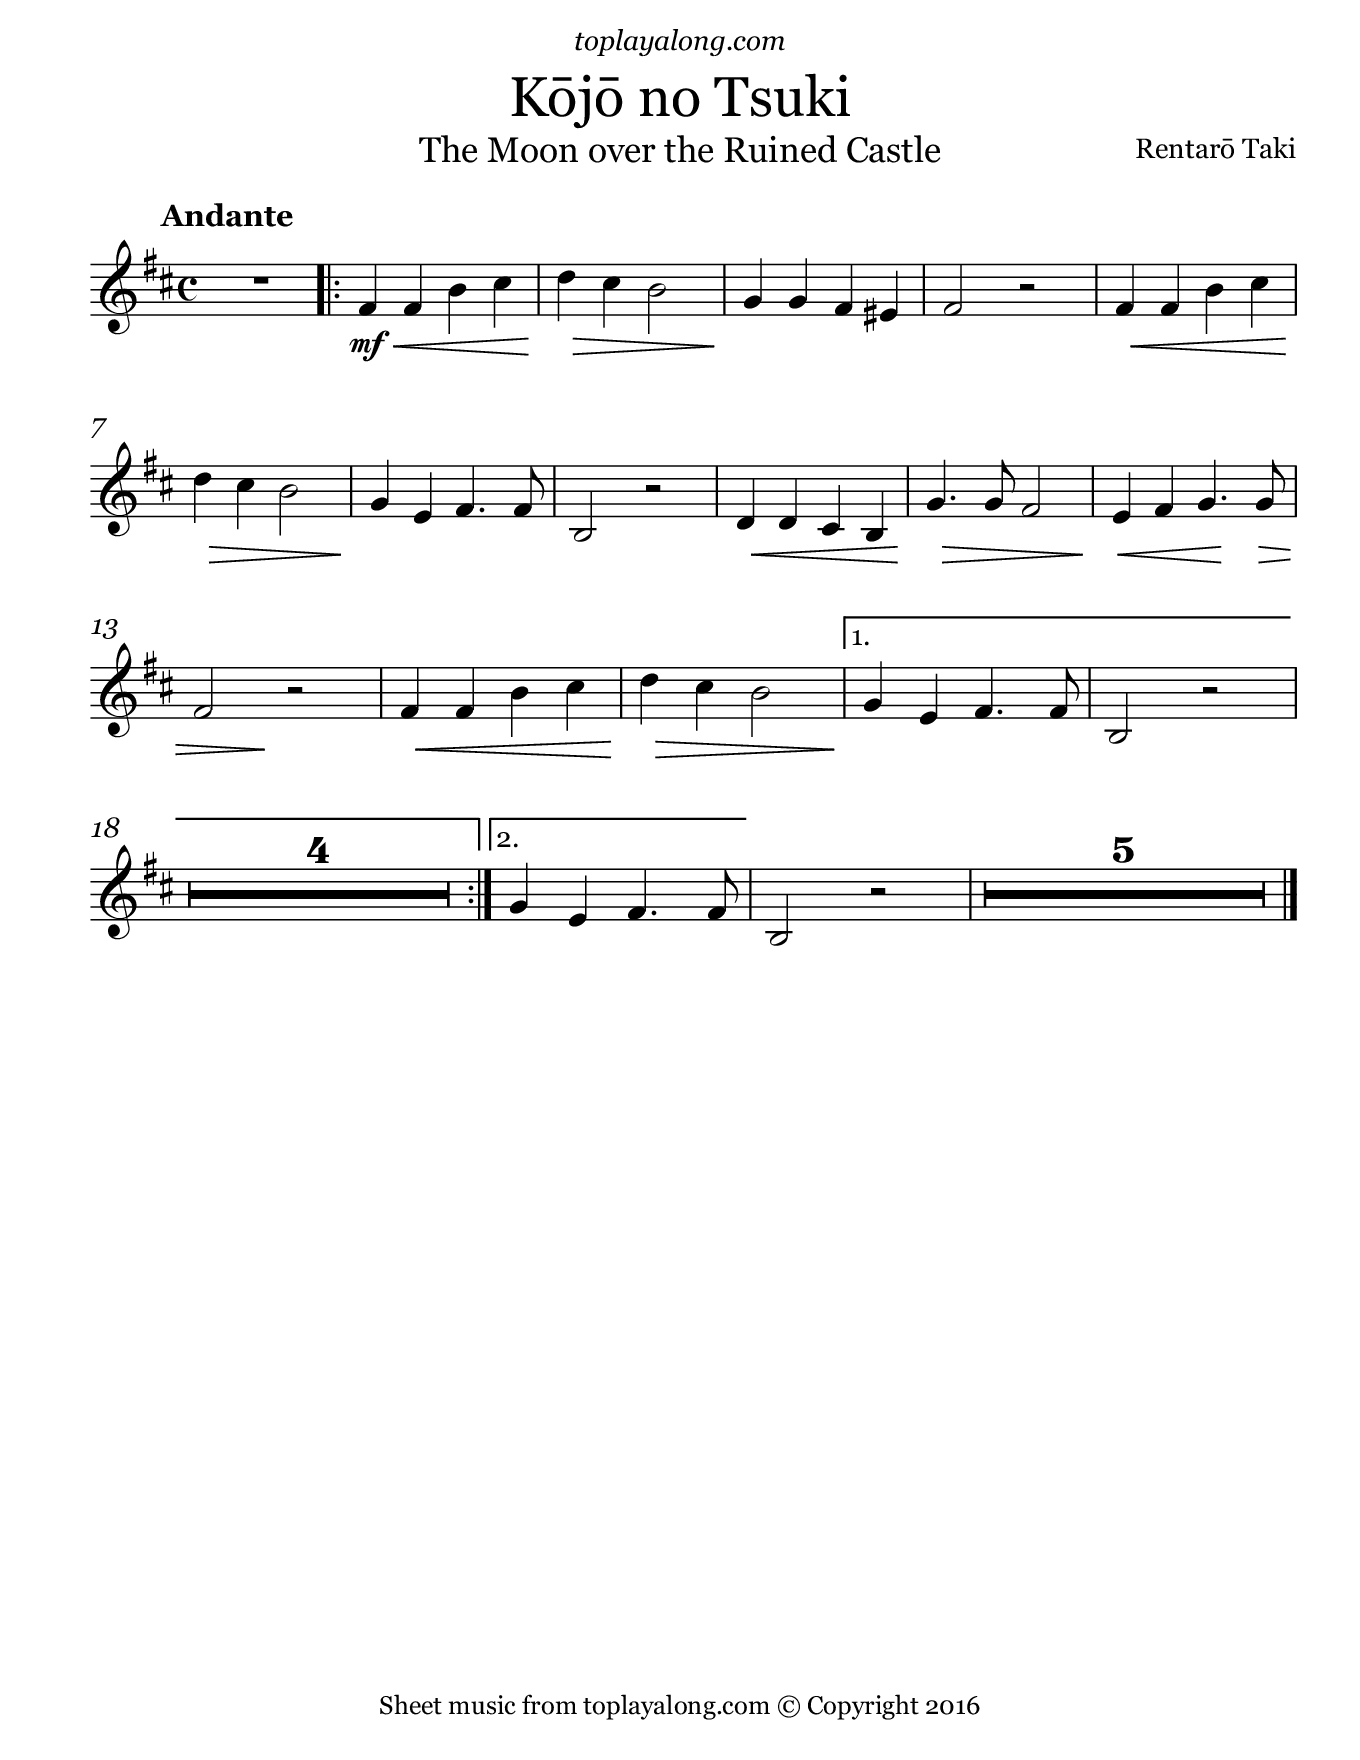 Moon over the Ruined Castle. Sheet music for Violin, page 1.